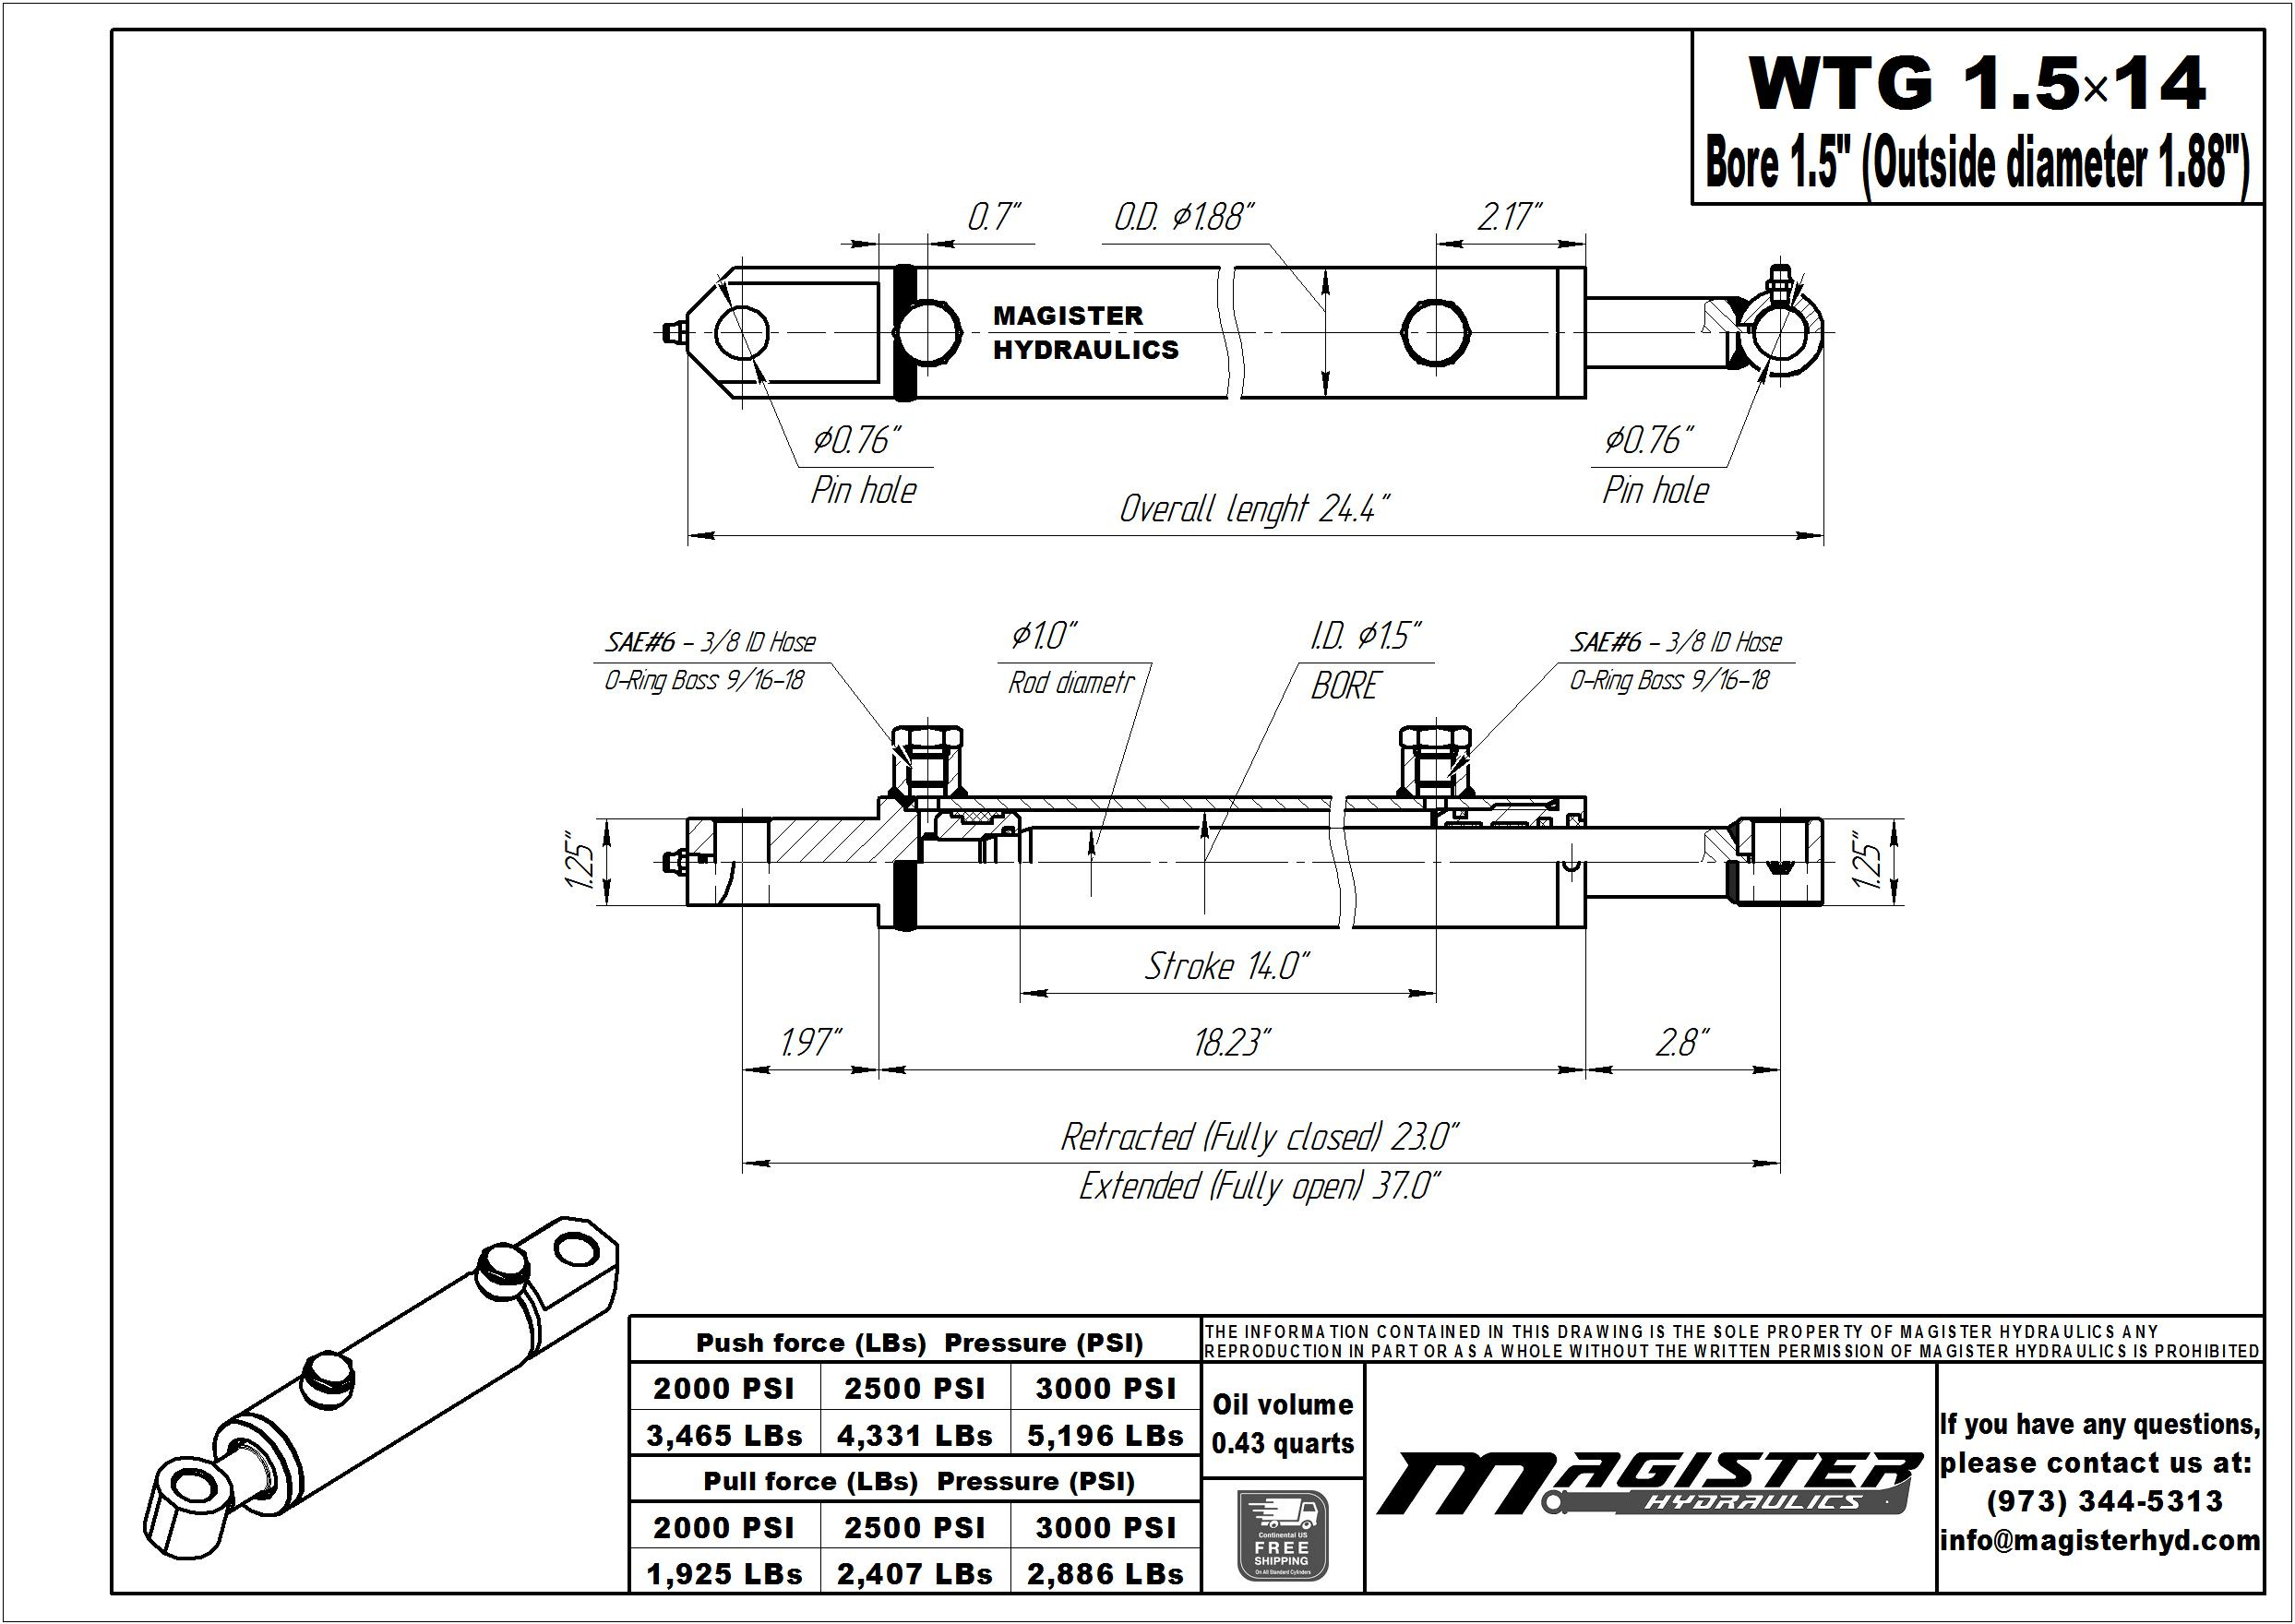 1.5 bore x 14 stroke hydraulic cylinder, welded tang double acting cylinder | Magister Hydraulics